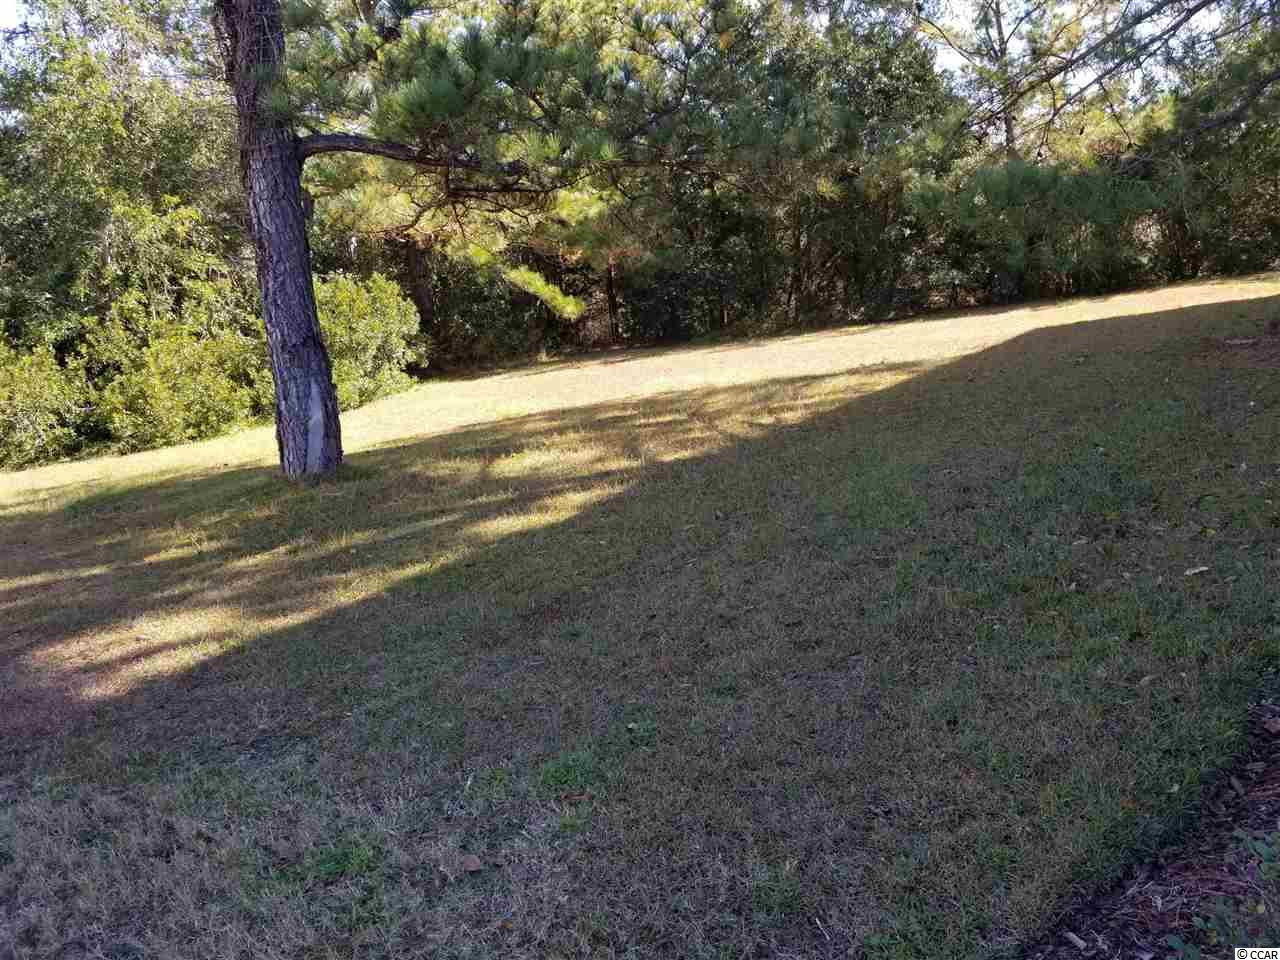 What a great place to call home when you build your dream home. This property is located in a private enclave across a wooden bridge nestled between the Intra- Coastal waterway and Tidewater Plantation golf course. This quaint community has a dock across the street from this parcel on the Waterway for the use of owners and an additional pool as well. Tidewater Plantation has many resort style amenities including an oceanfront beach cabana for its owners with facilities.